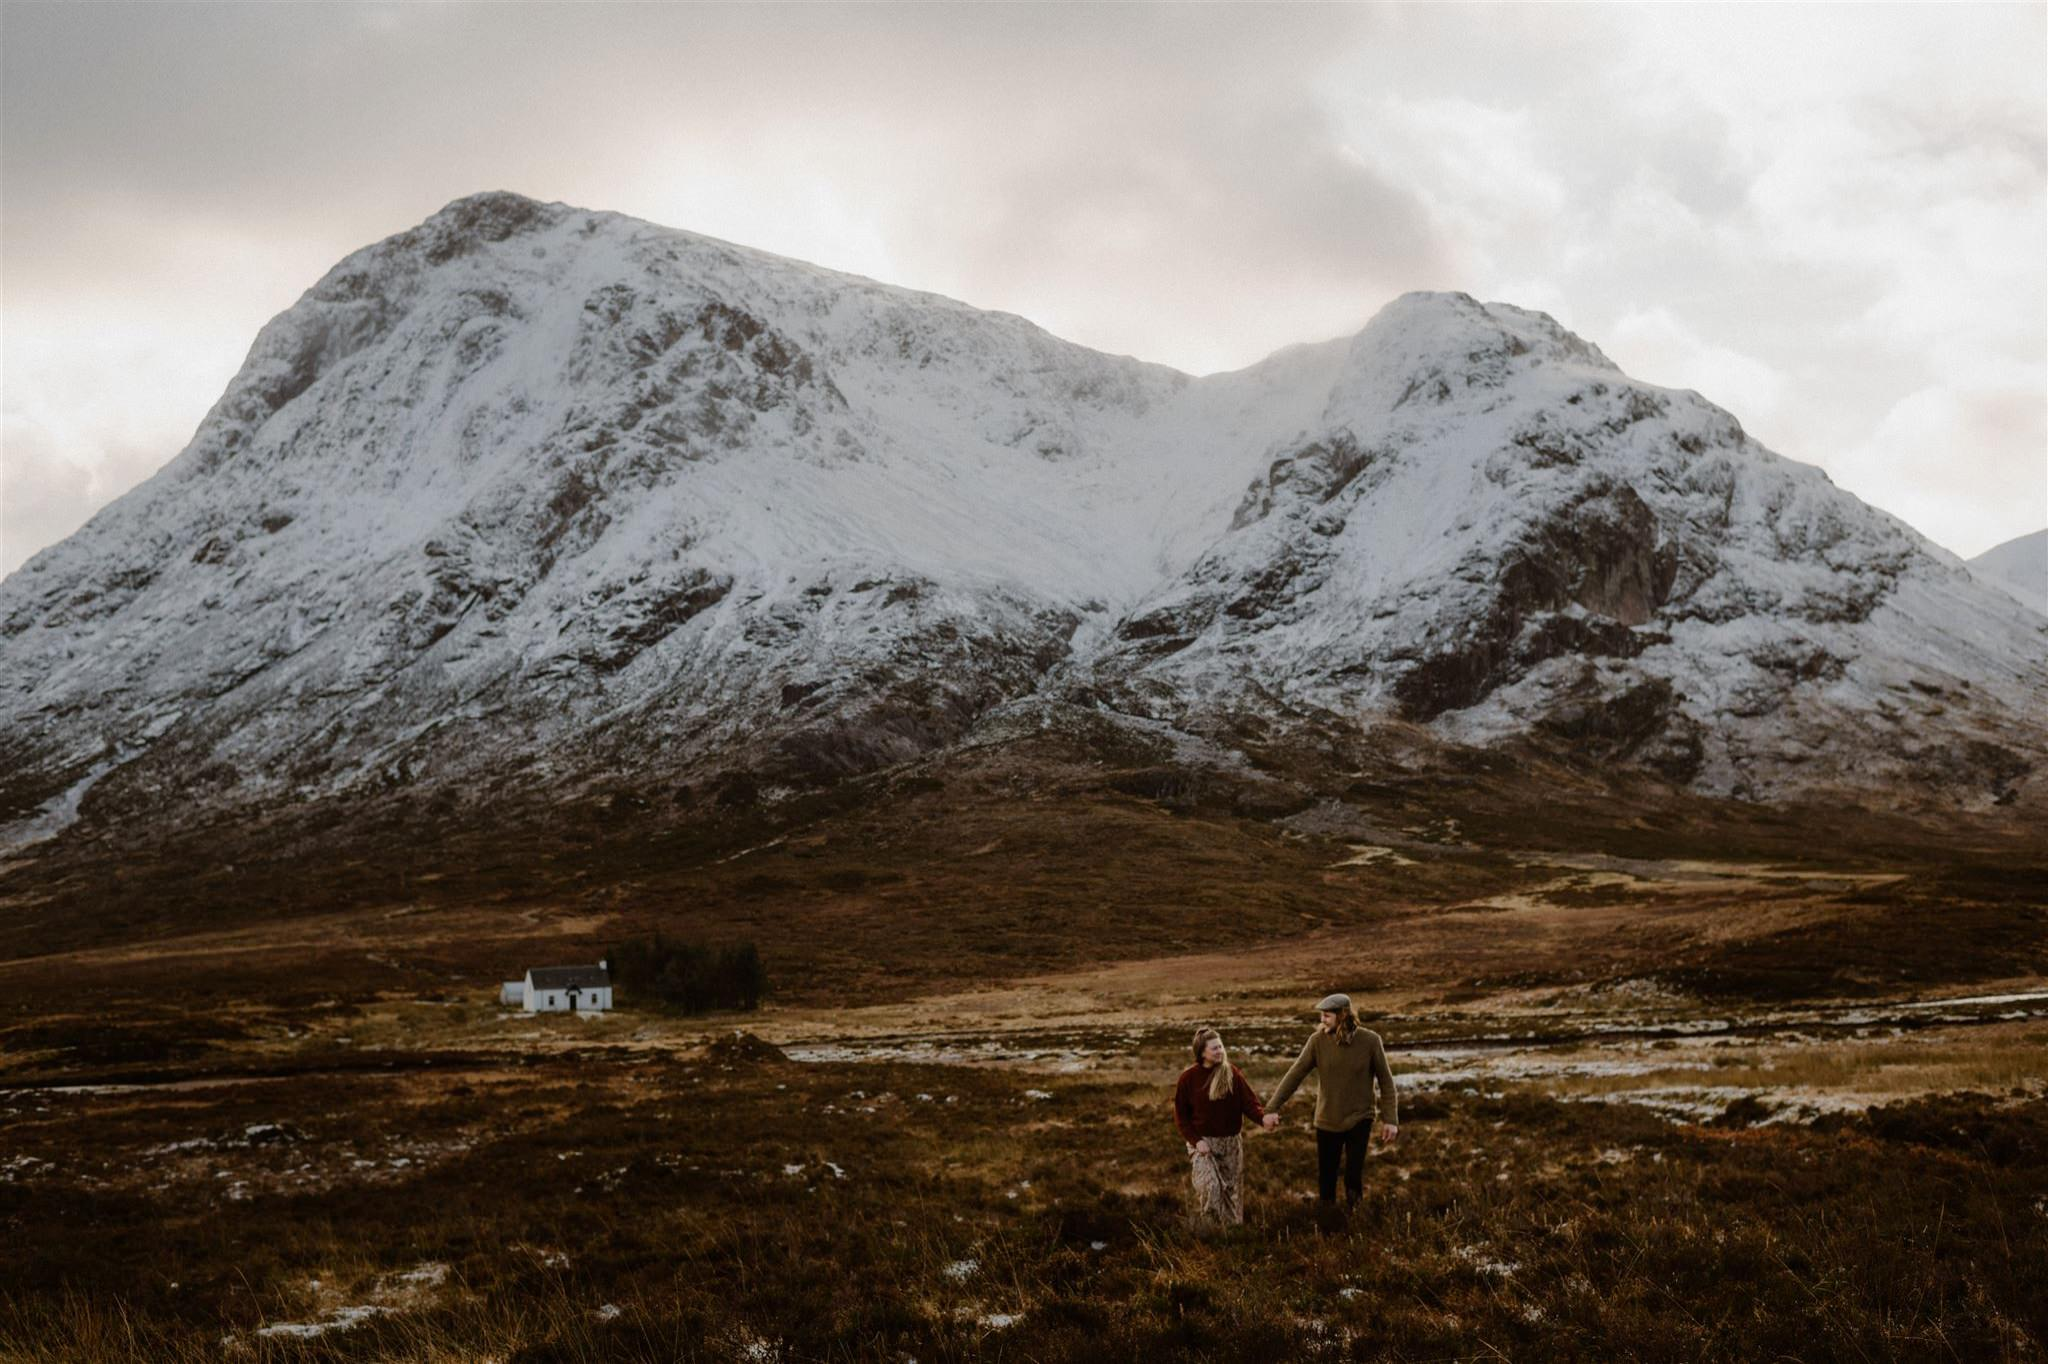 Elopement wedding couple holding hands in front of a mountain backdrop in Glencoe Scottish Highlands